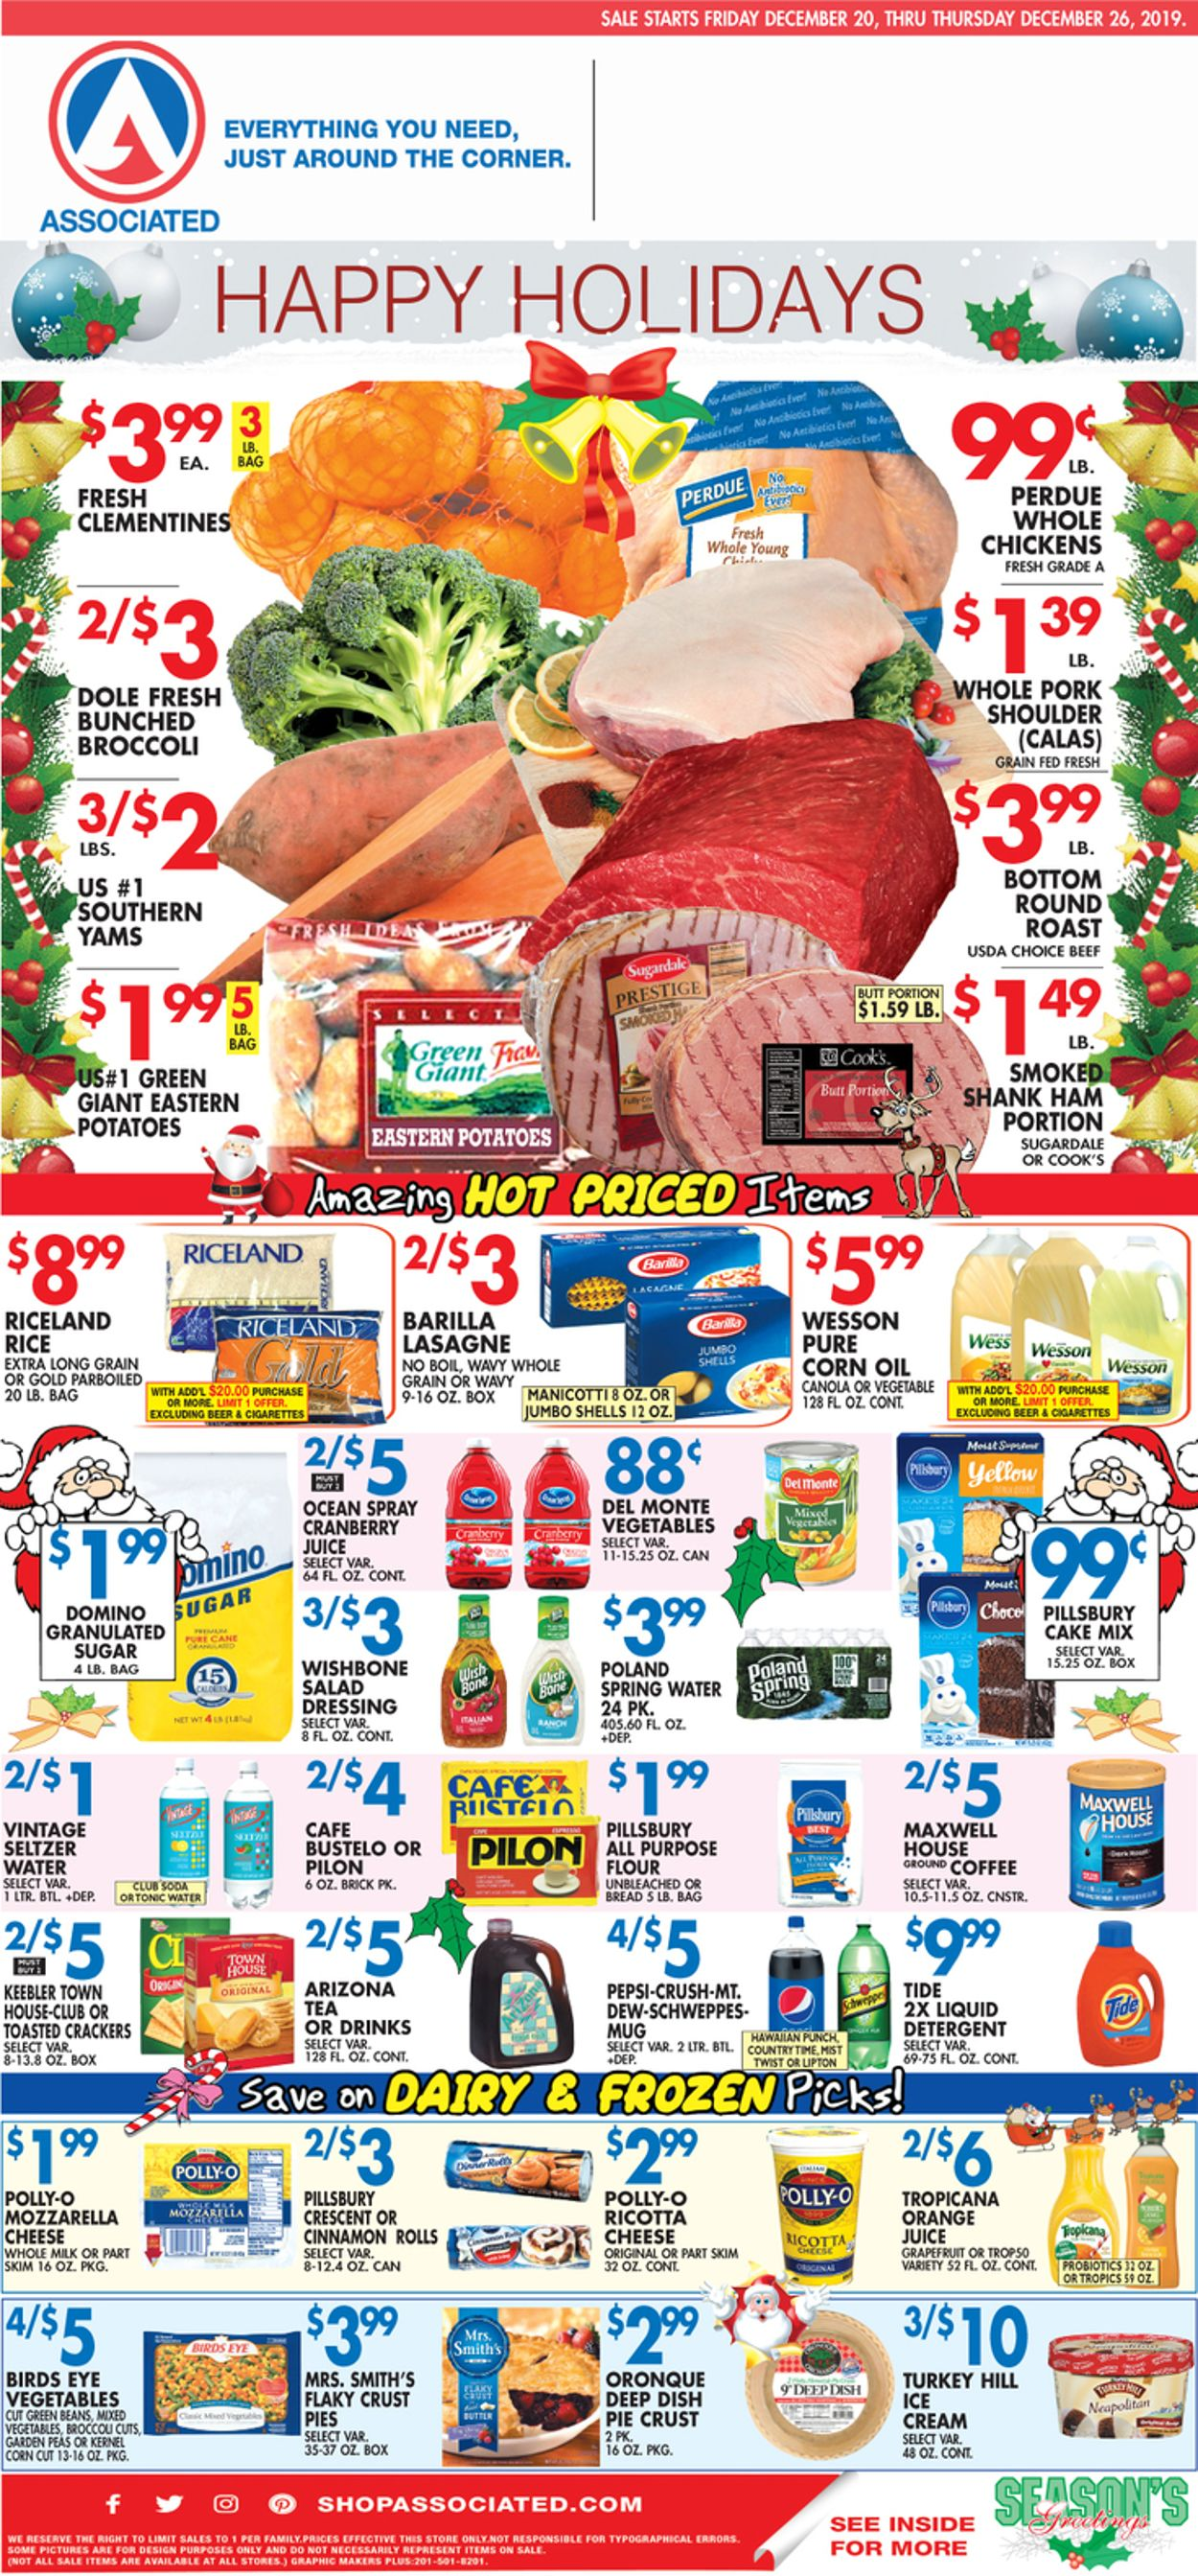 Catalogue Associated Supermarkets - Holidays Ad 2019 from 12/20/2019